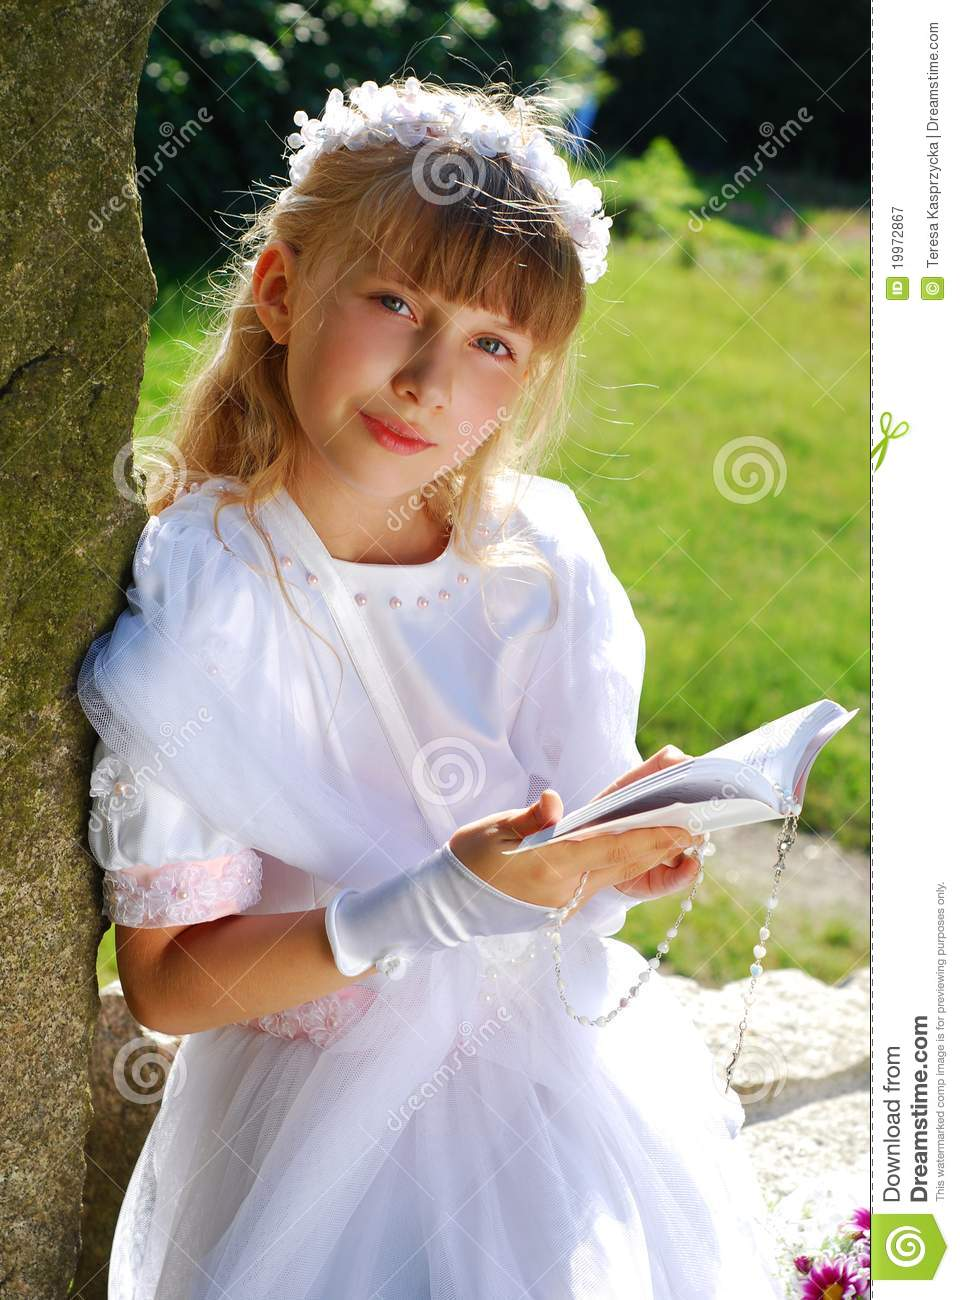 Girl Going To The First Holy Communion Stock Image - Image ...